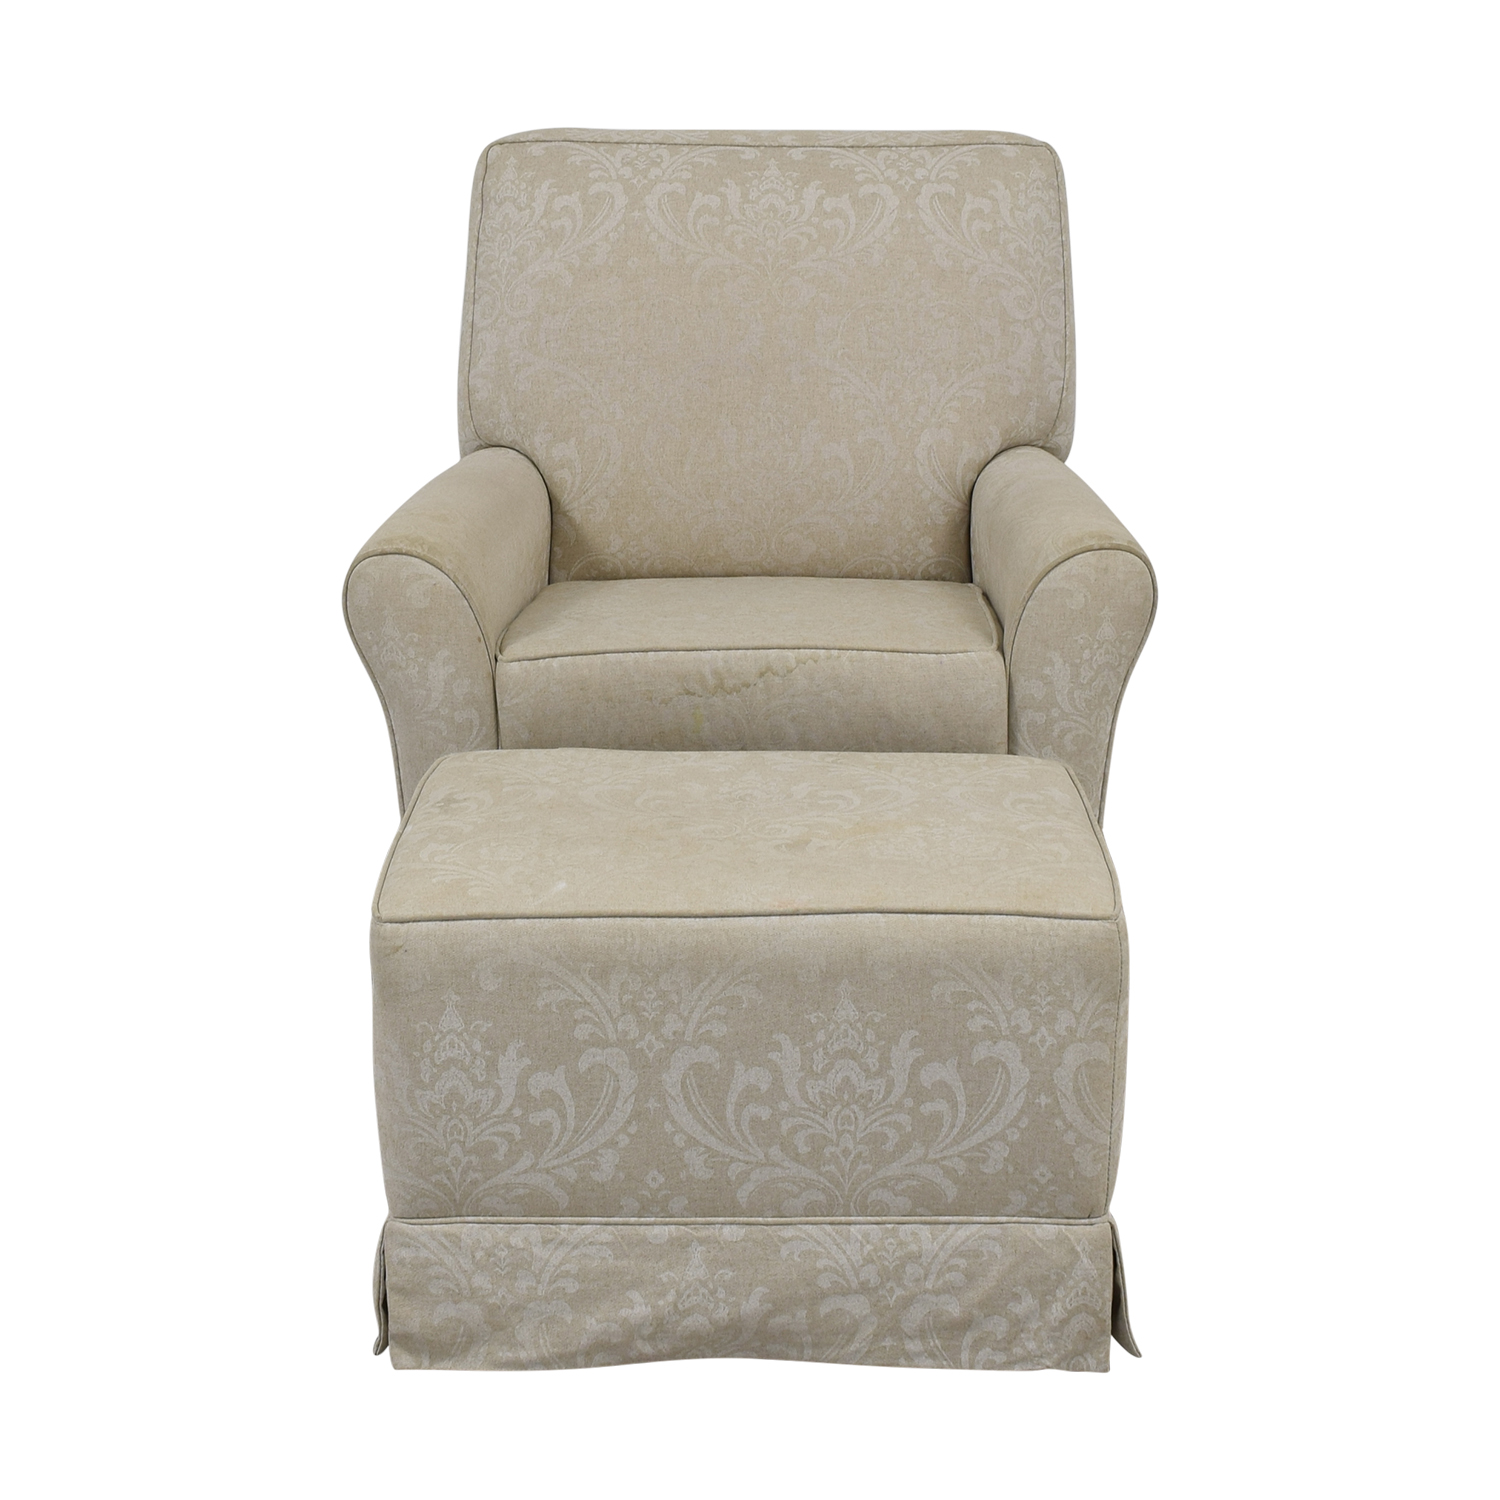 Slipcover Glider Chair and Ottoman coupon